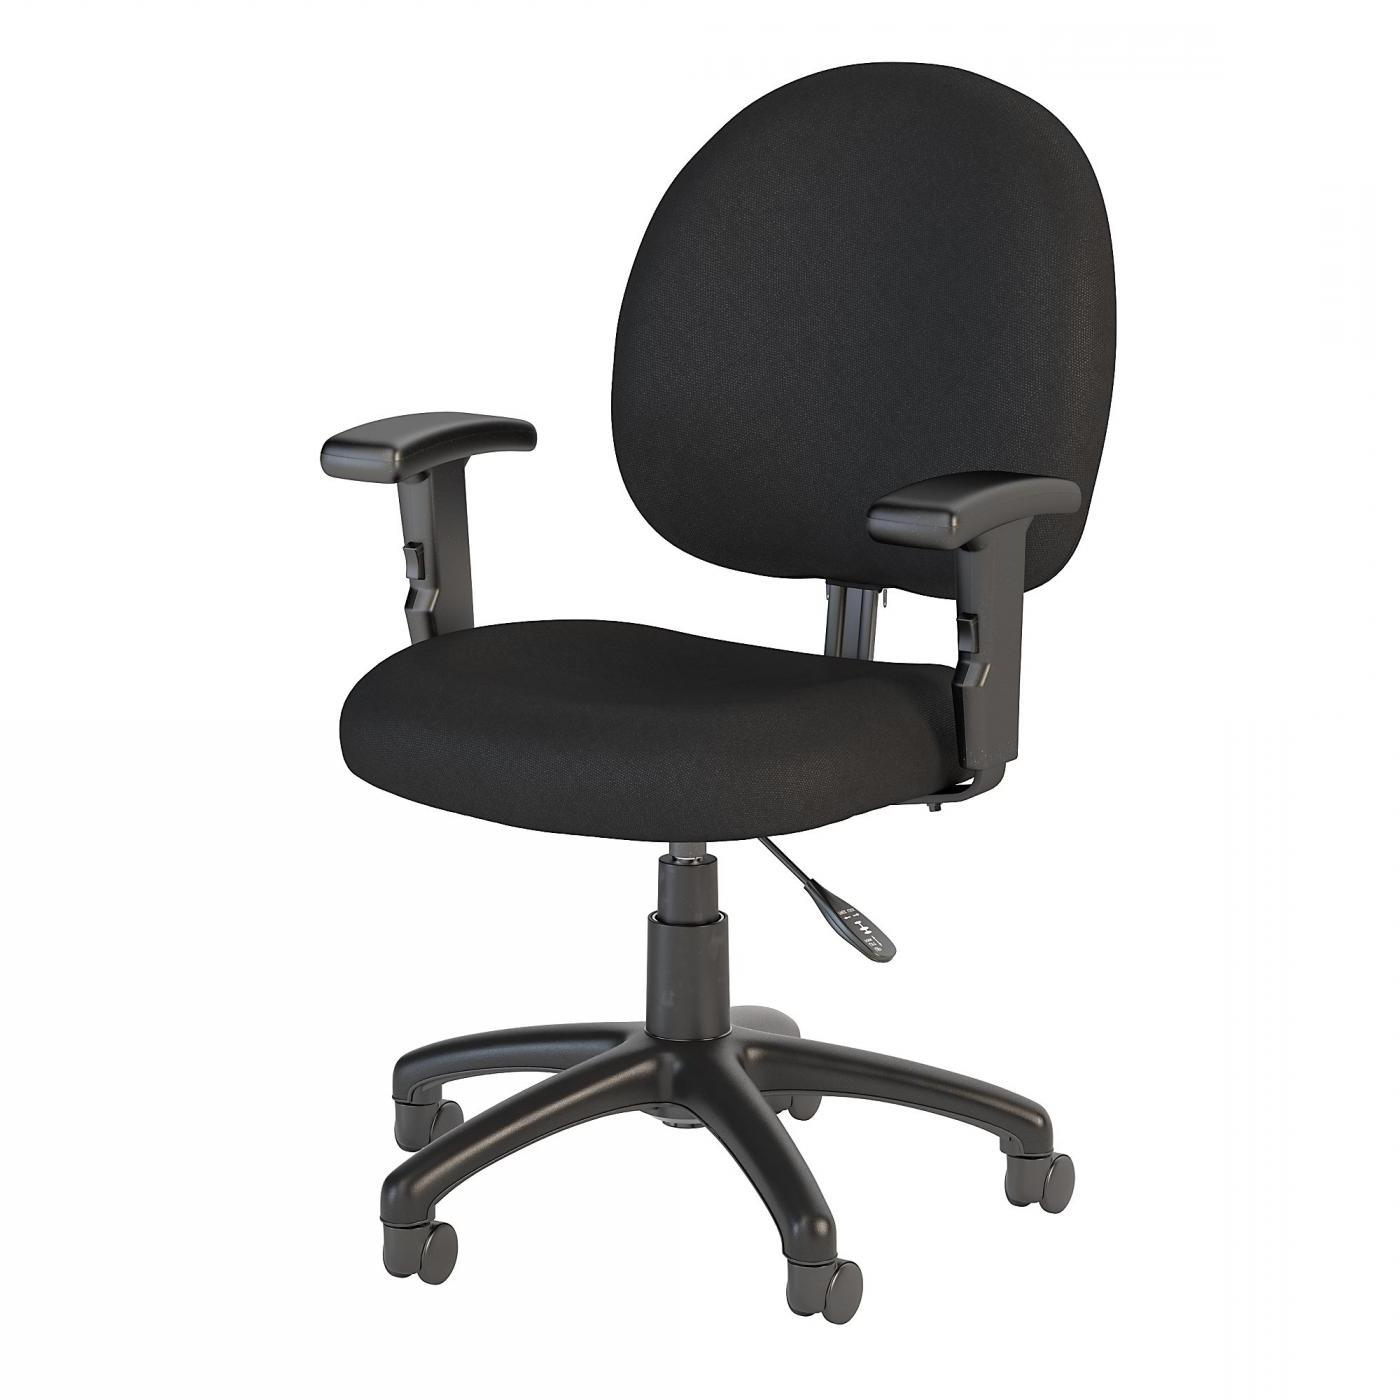 BUSH BUSINESS FURNITURE ACCORD TASK CHAIR WITH ARMS. FREE SHIPPING.  SALE DEDUCT 10% MORE ENTER '10percent' IN COUPON CODE BOX WHILE CHECKING OUT.